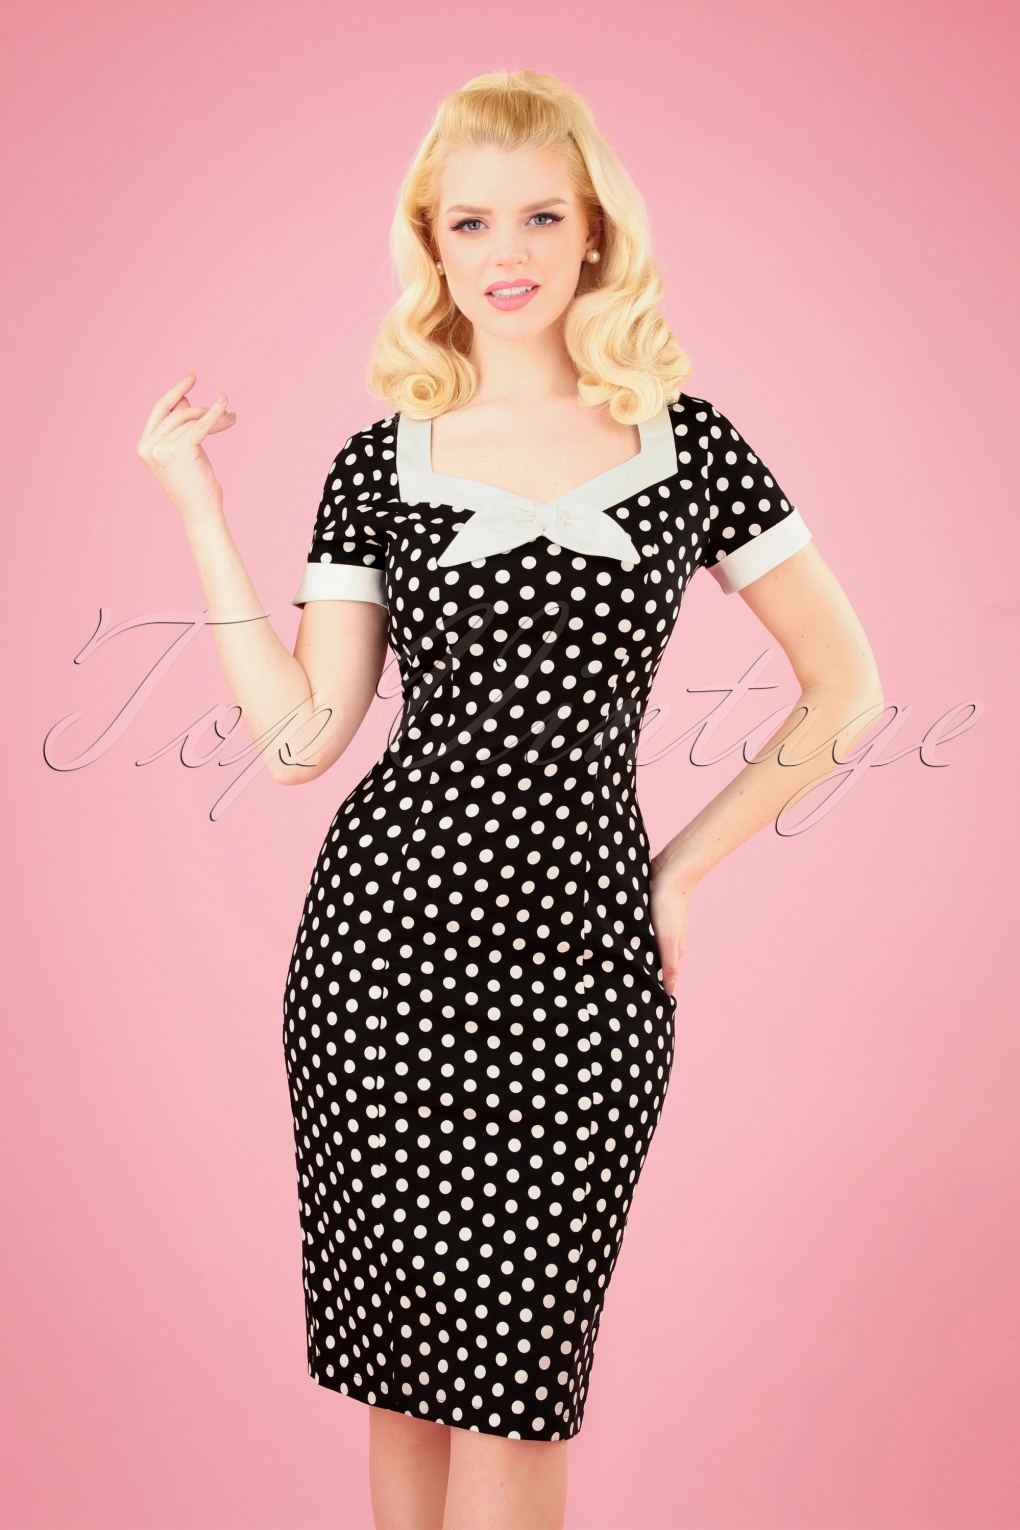 500 Vintage Style Dresses for Sale 50s Polka Love Wiggle Dress in Black �36.27 AT vintagedancer.com